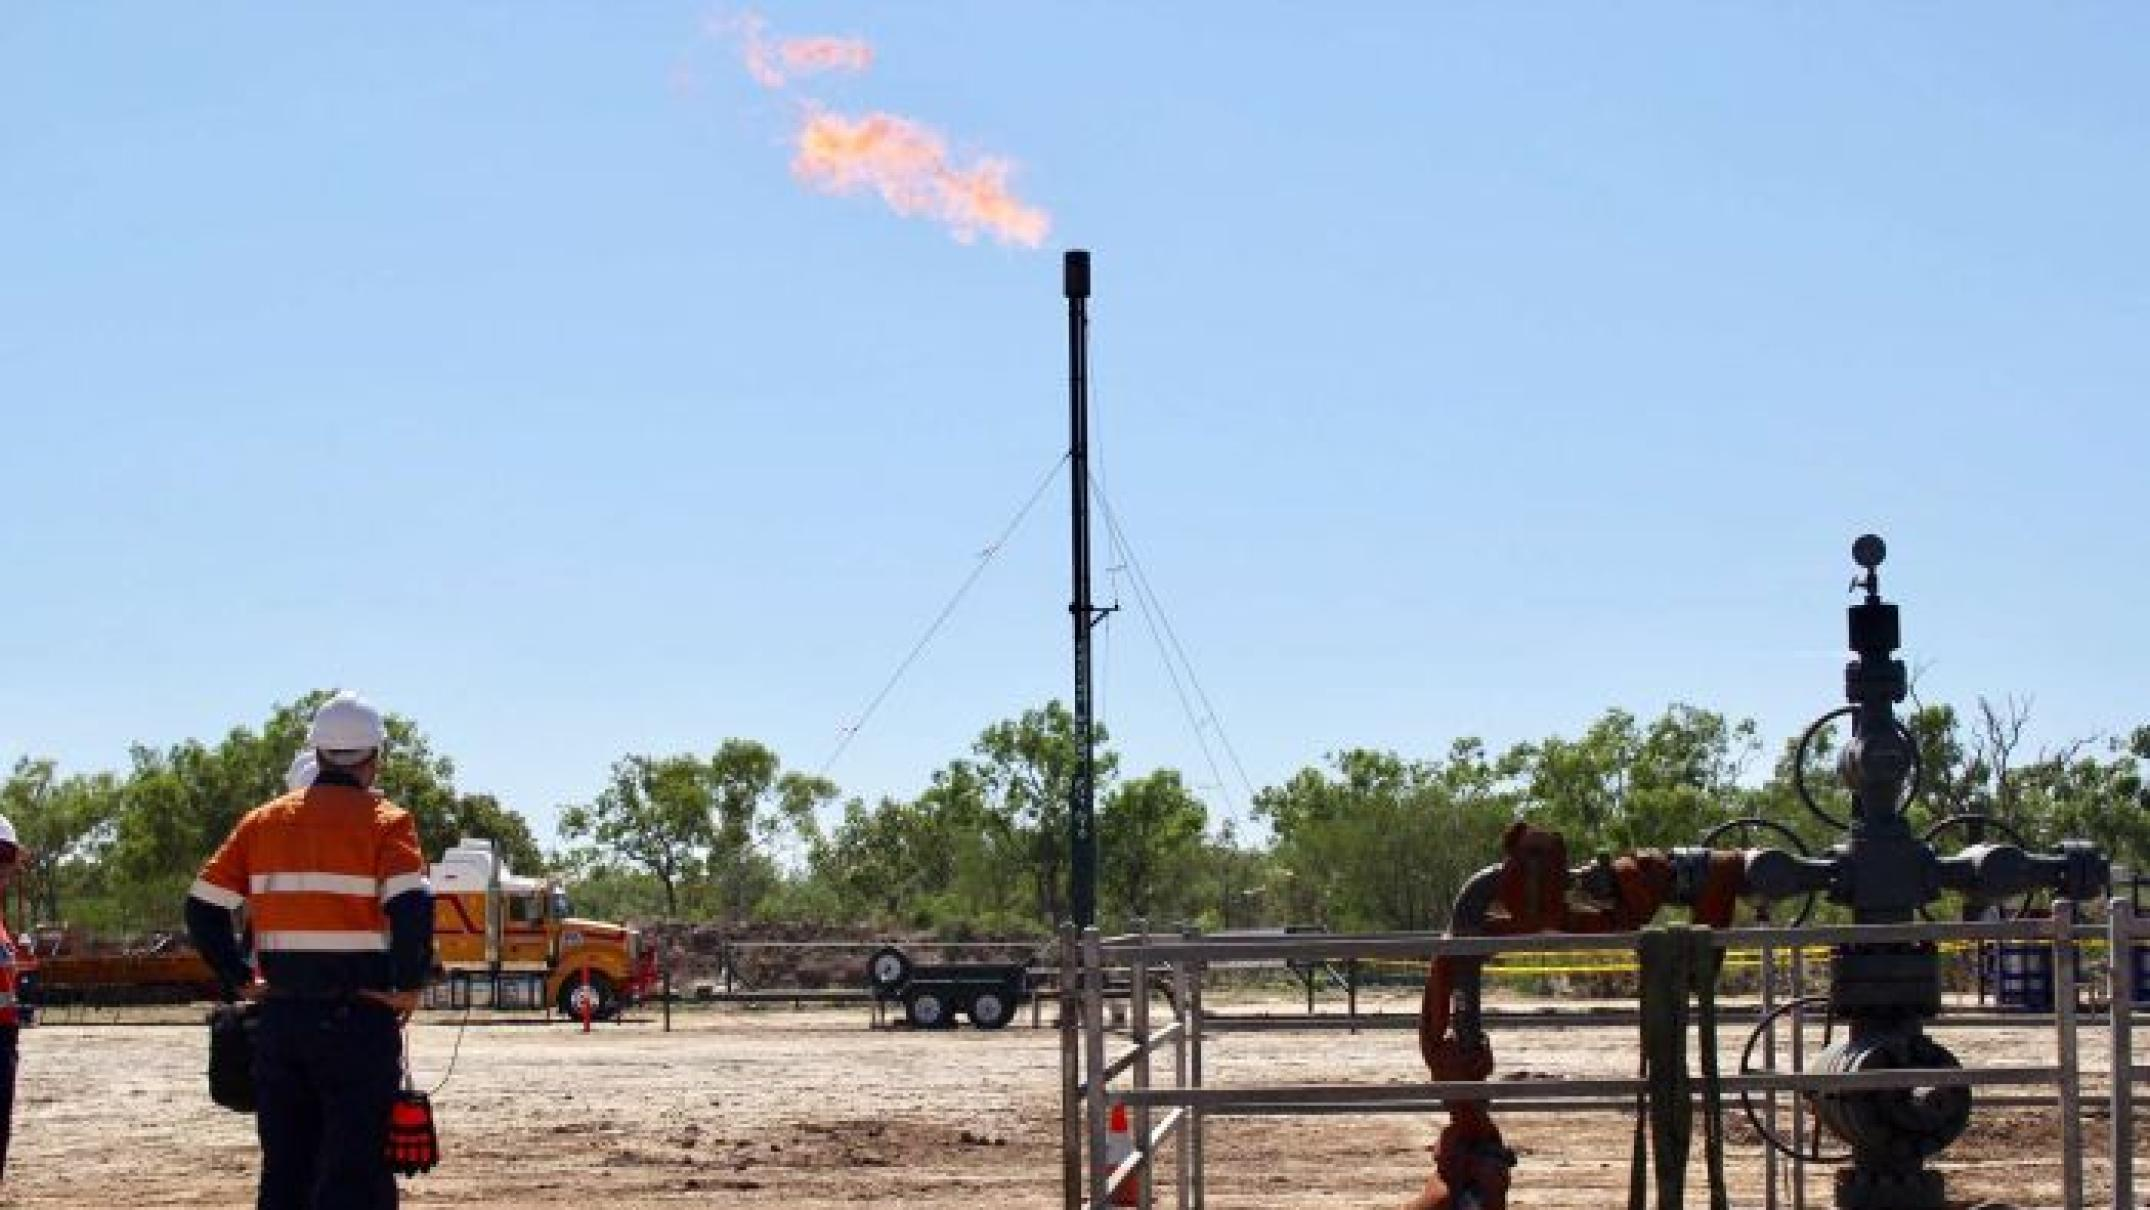 as-hydraulic-fracturing-gears-up-in-the-outback,-scientists-are-monitoring-potential-earthquakes